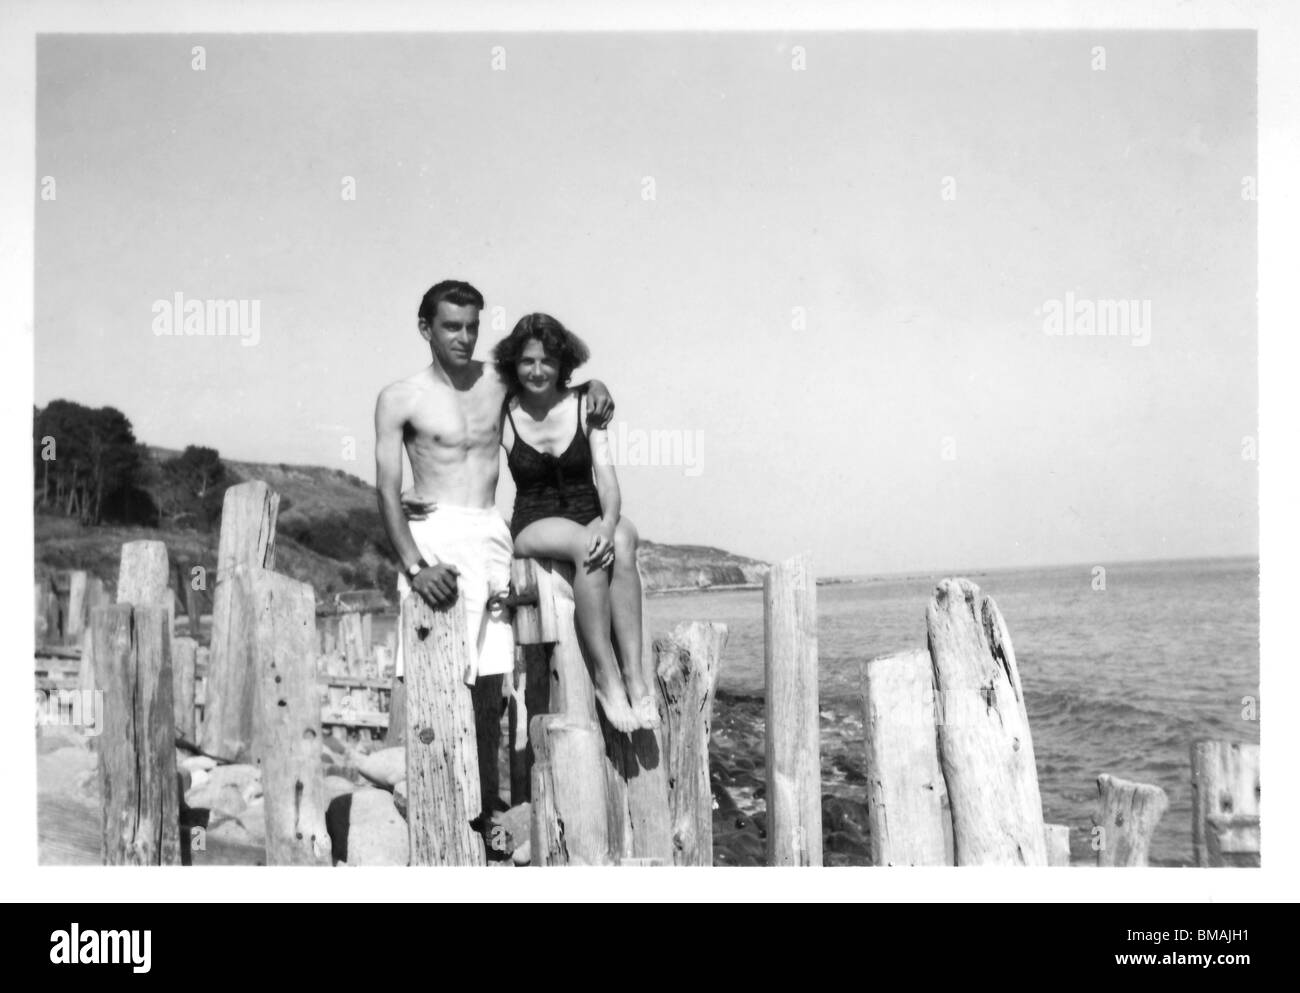 Archive Photo: Holiday snap of couple on beach in swimming costume (Castlehaven Isle of Wight - 1948) - Stock Image